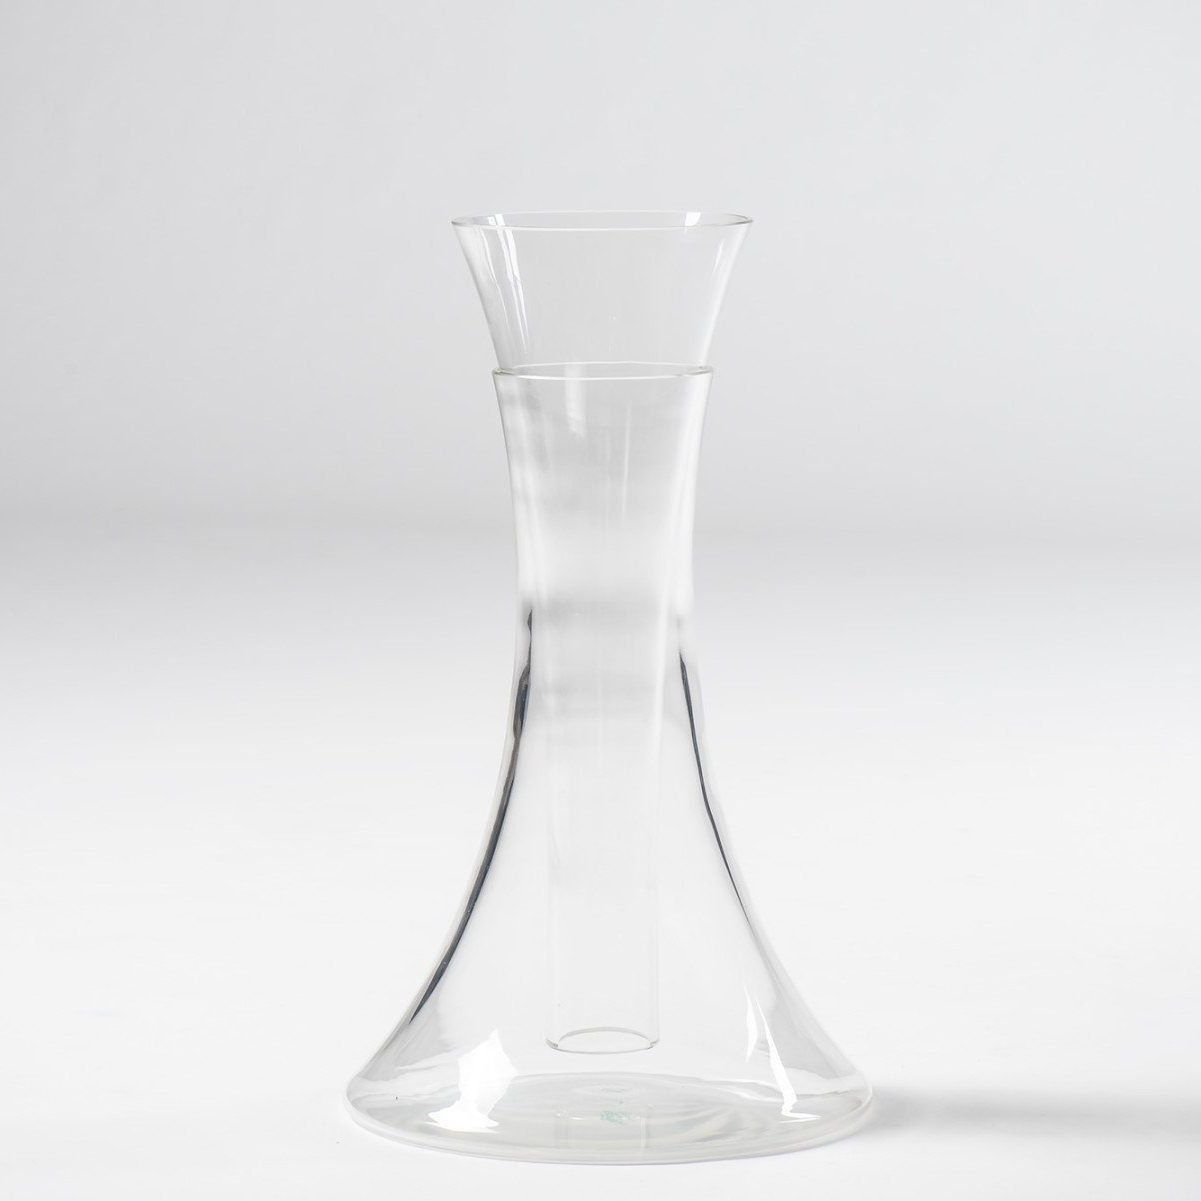 Angelo Mangiarotti |                                  Glass vase